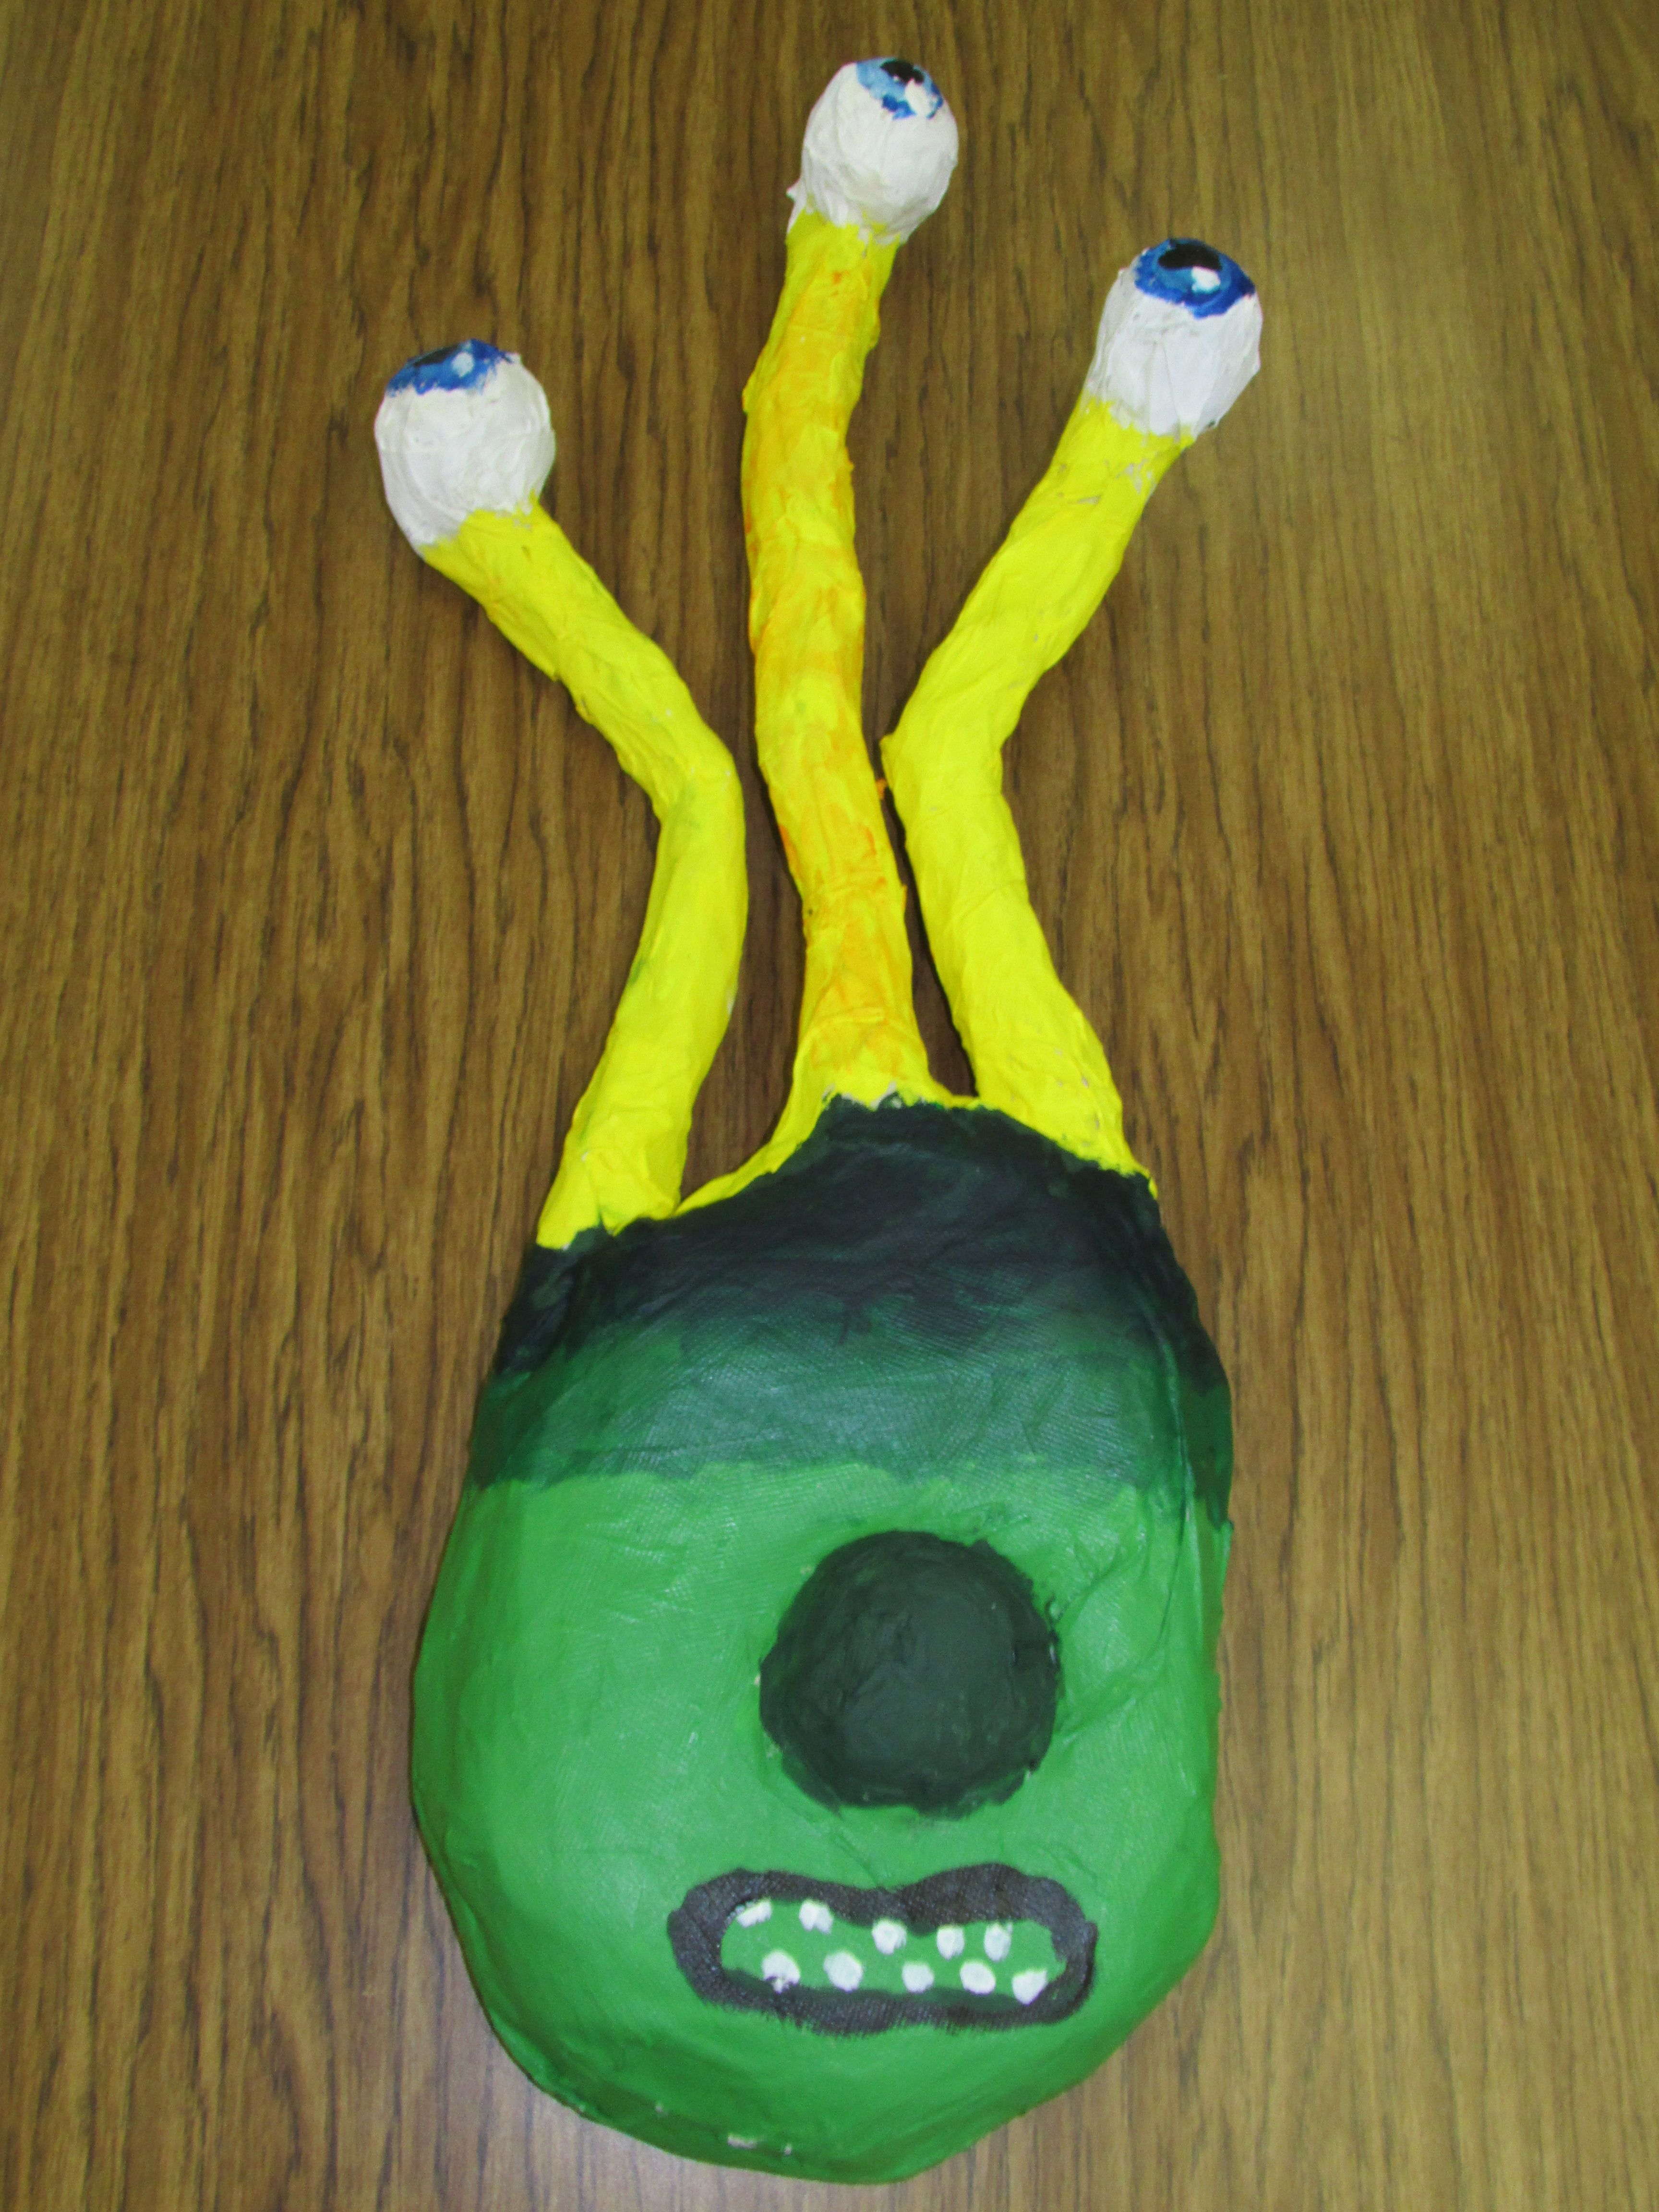 Paper Mache Alien Mask By A 3rd Grader Lesson By Art